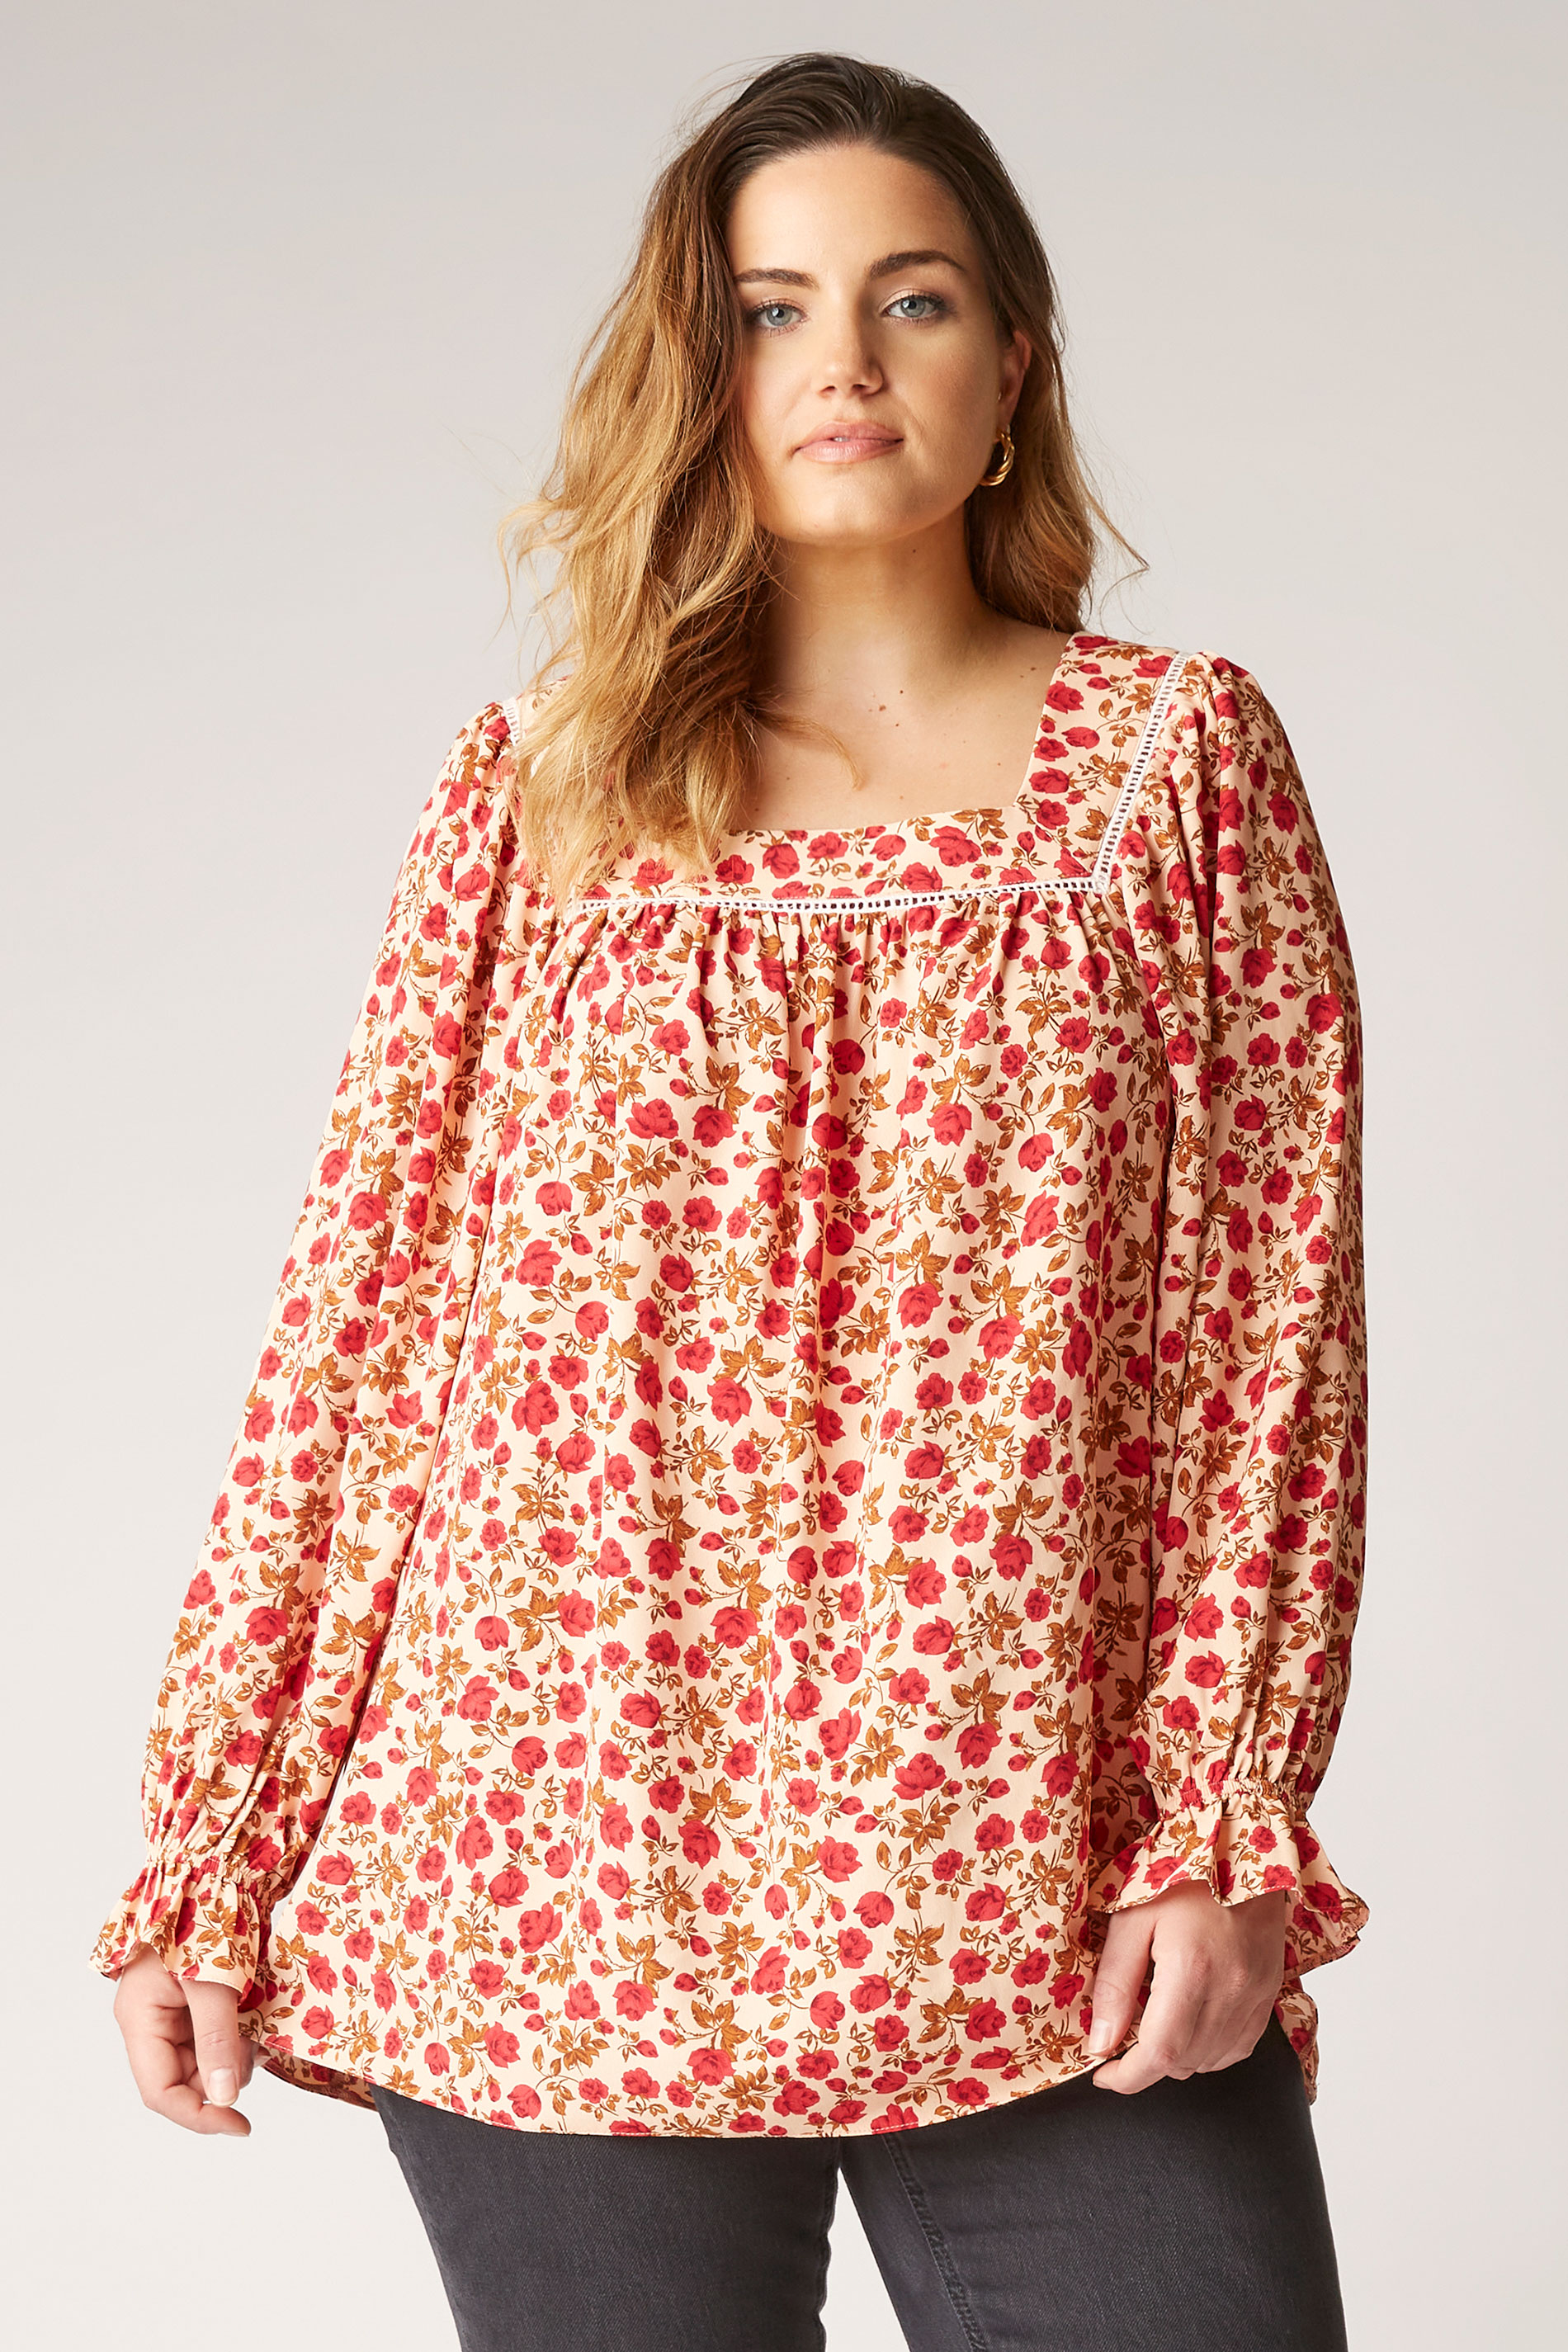 THE LIMITED EDIT Natural Square Neck Blossom Blouse_A.jpg